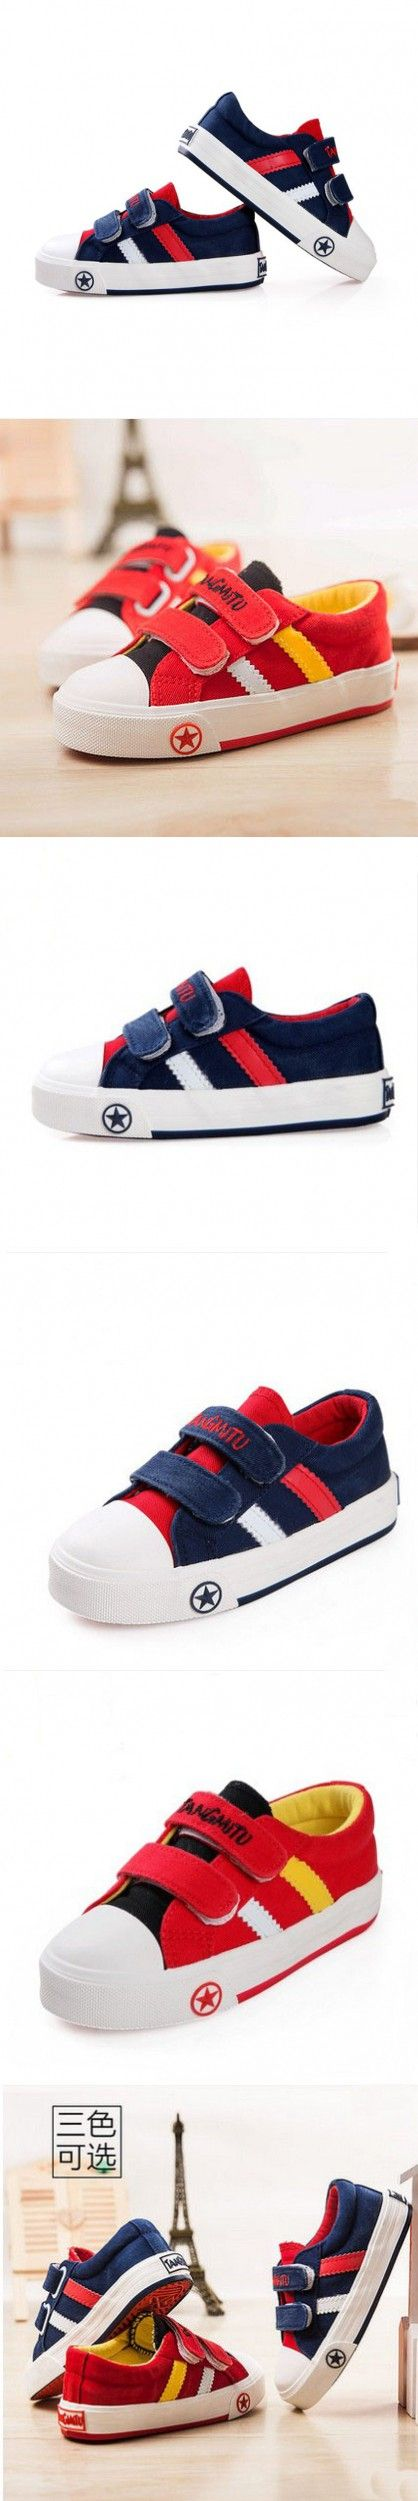 Fashion Style Brand Children Sneakers Baby Kids Casual Sport Canvas Shoes Boys Girls Runing Shoes Colour Blue And Red